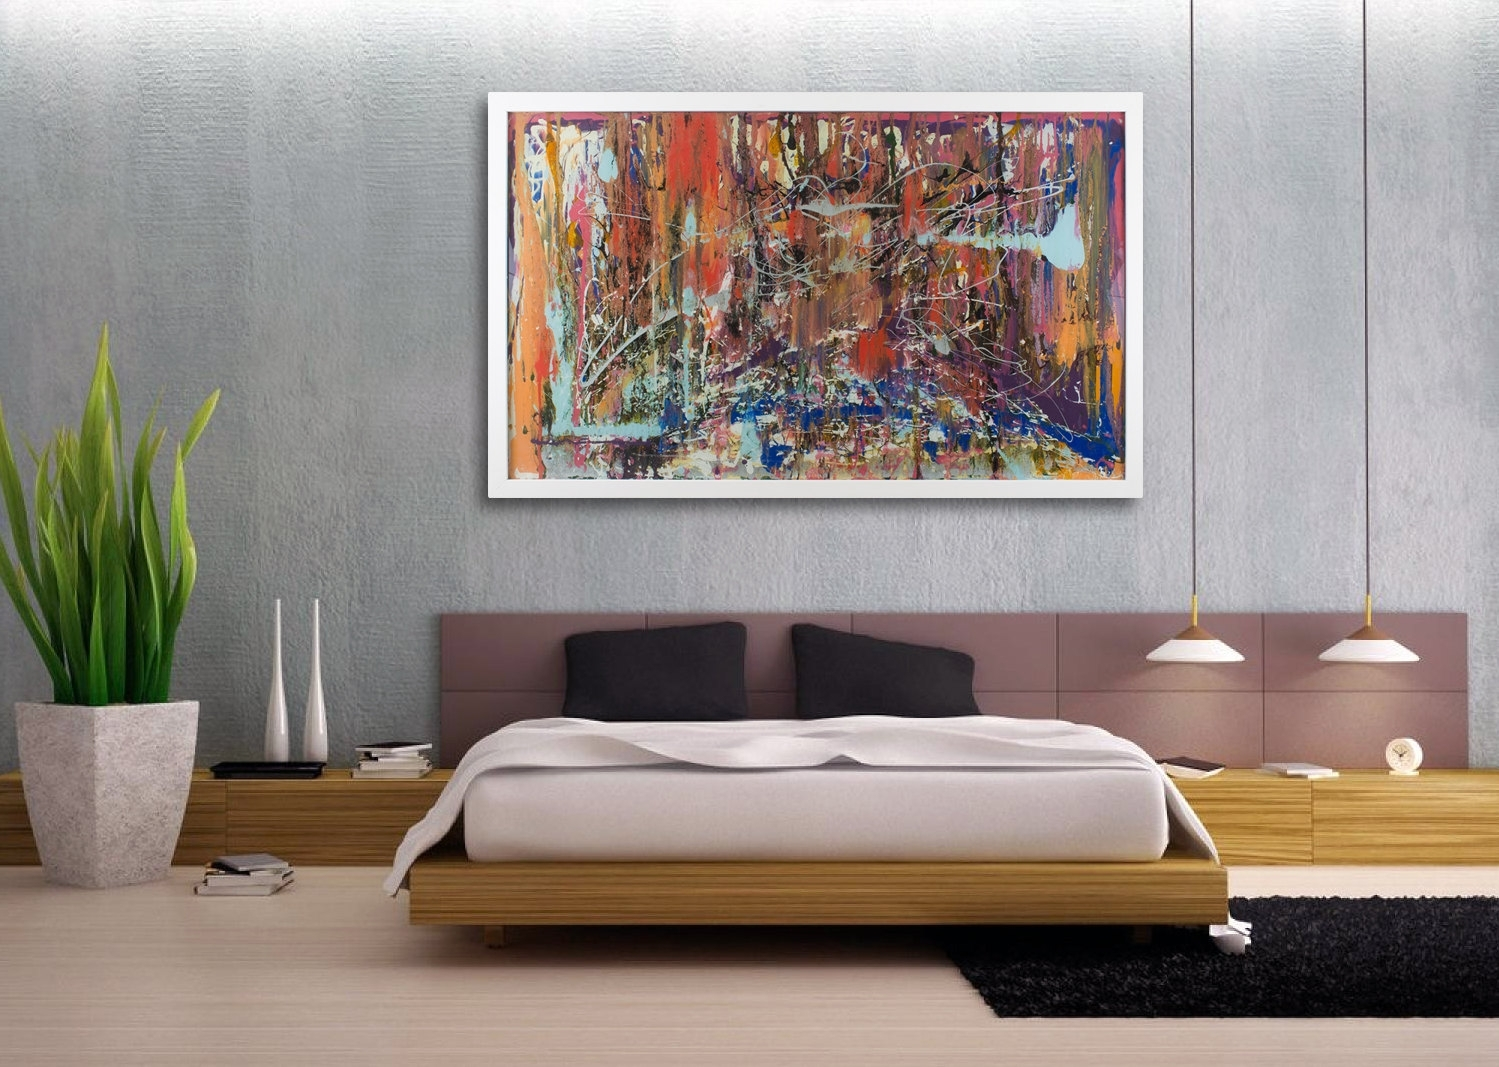 Expensive Large Canvas Wall Art Bedroom — Joanne Russo Homesjoanne Throughout Latest Quirky Canvas Wall Art (View 5 of 15)